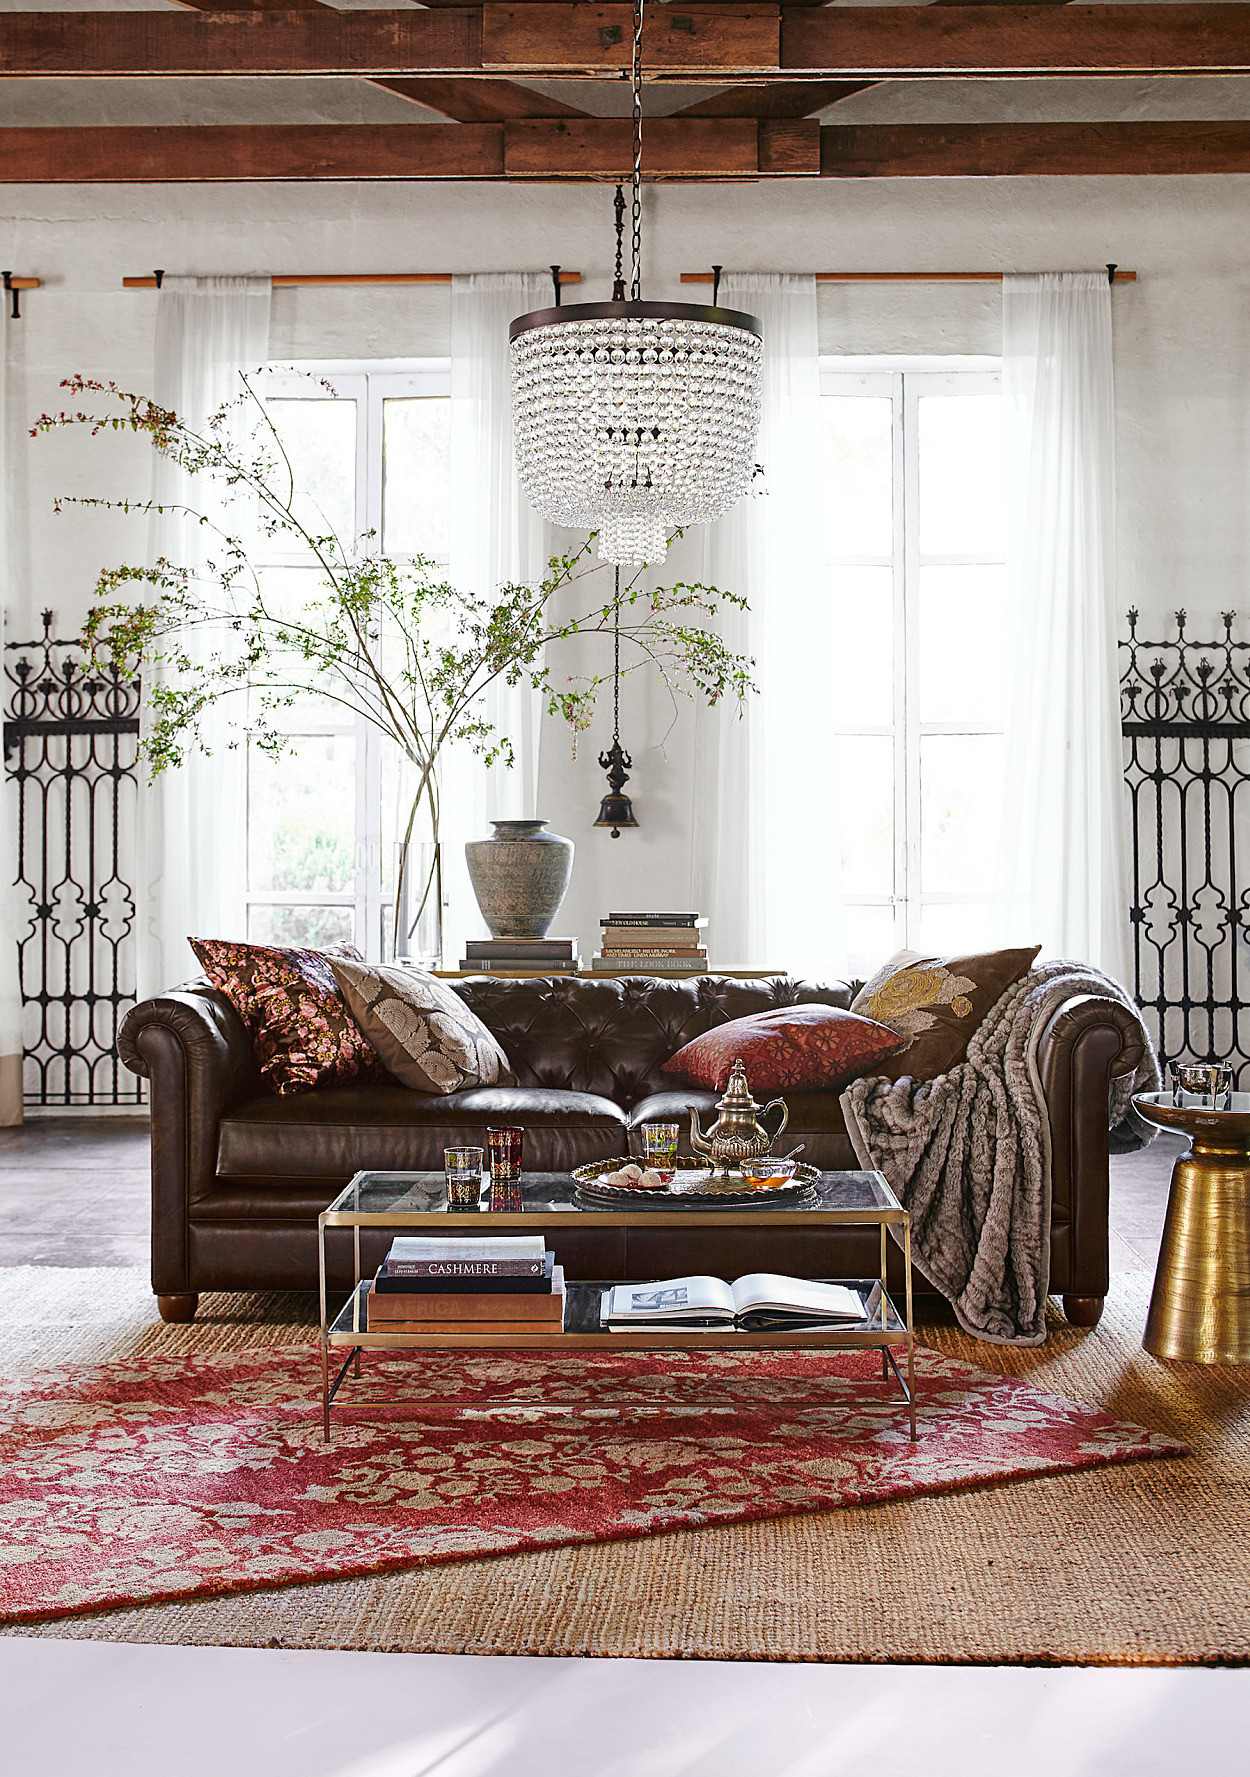 Pottery Barn Launches Eclectic Decor Collection With Designer ...